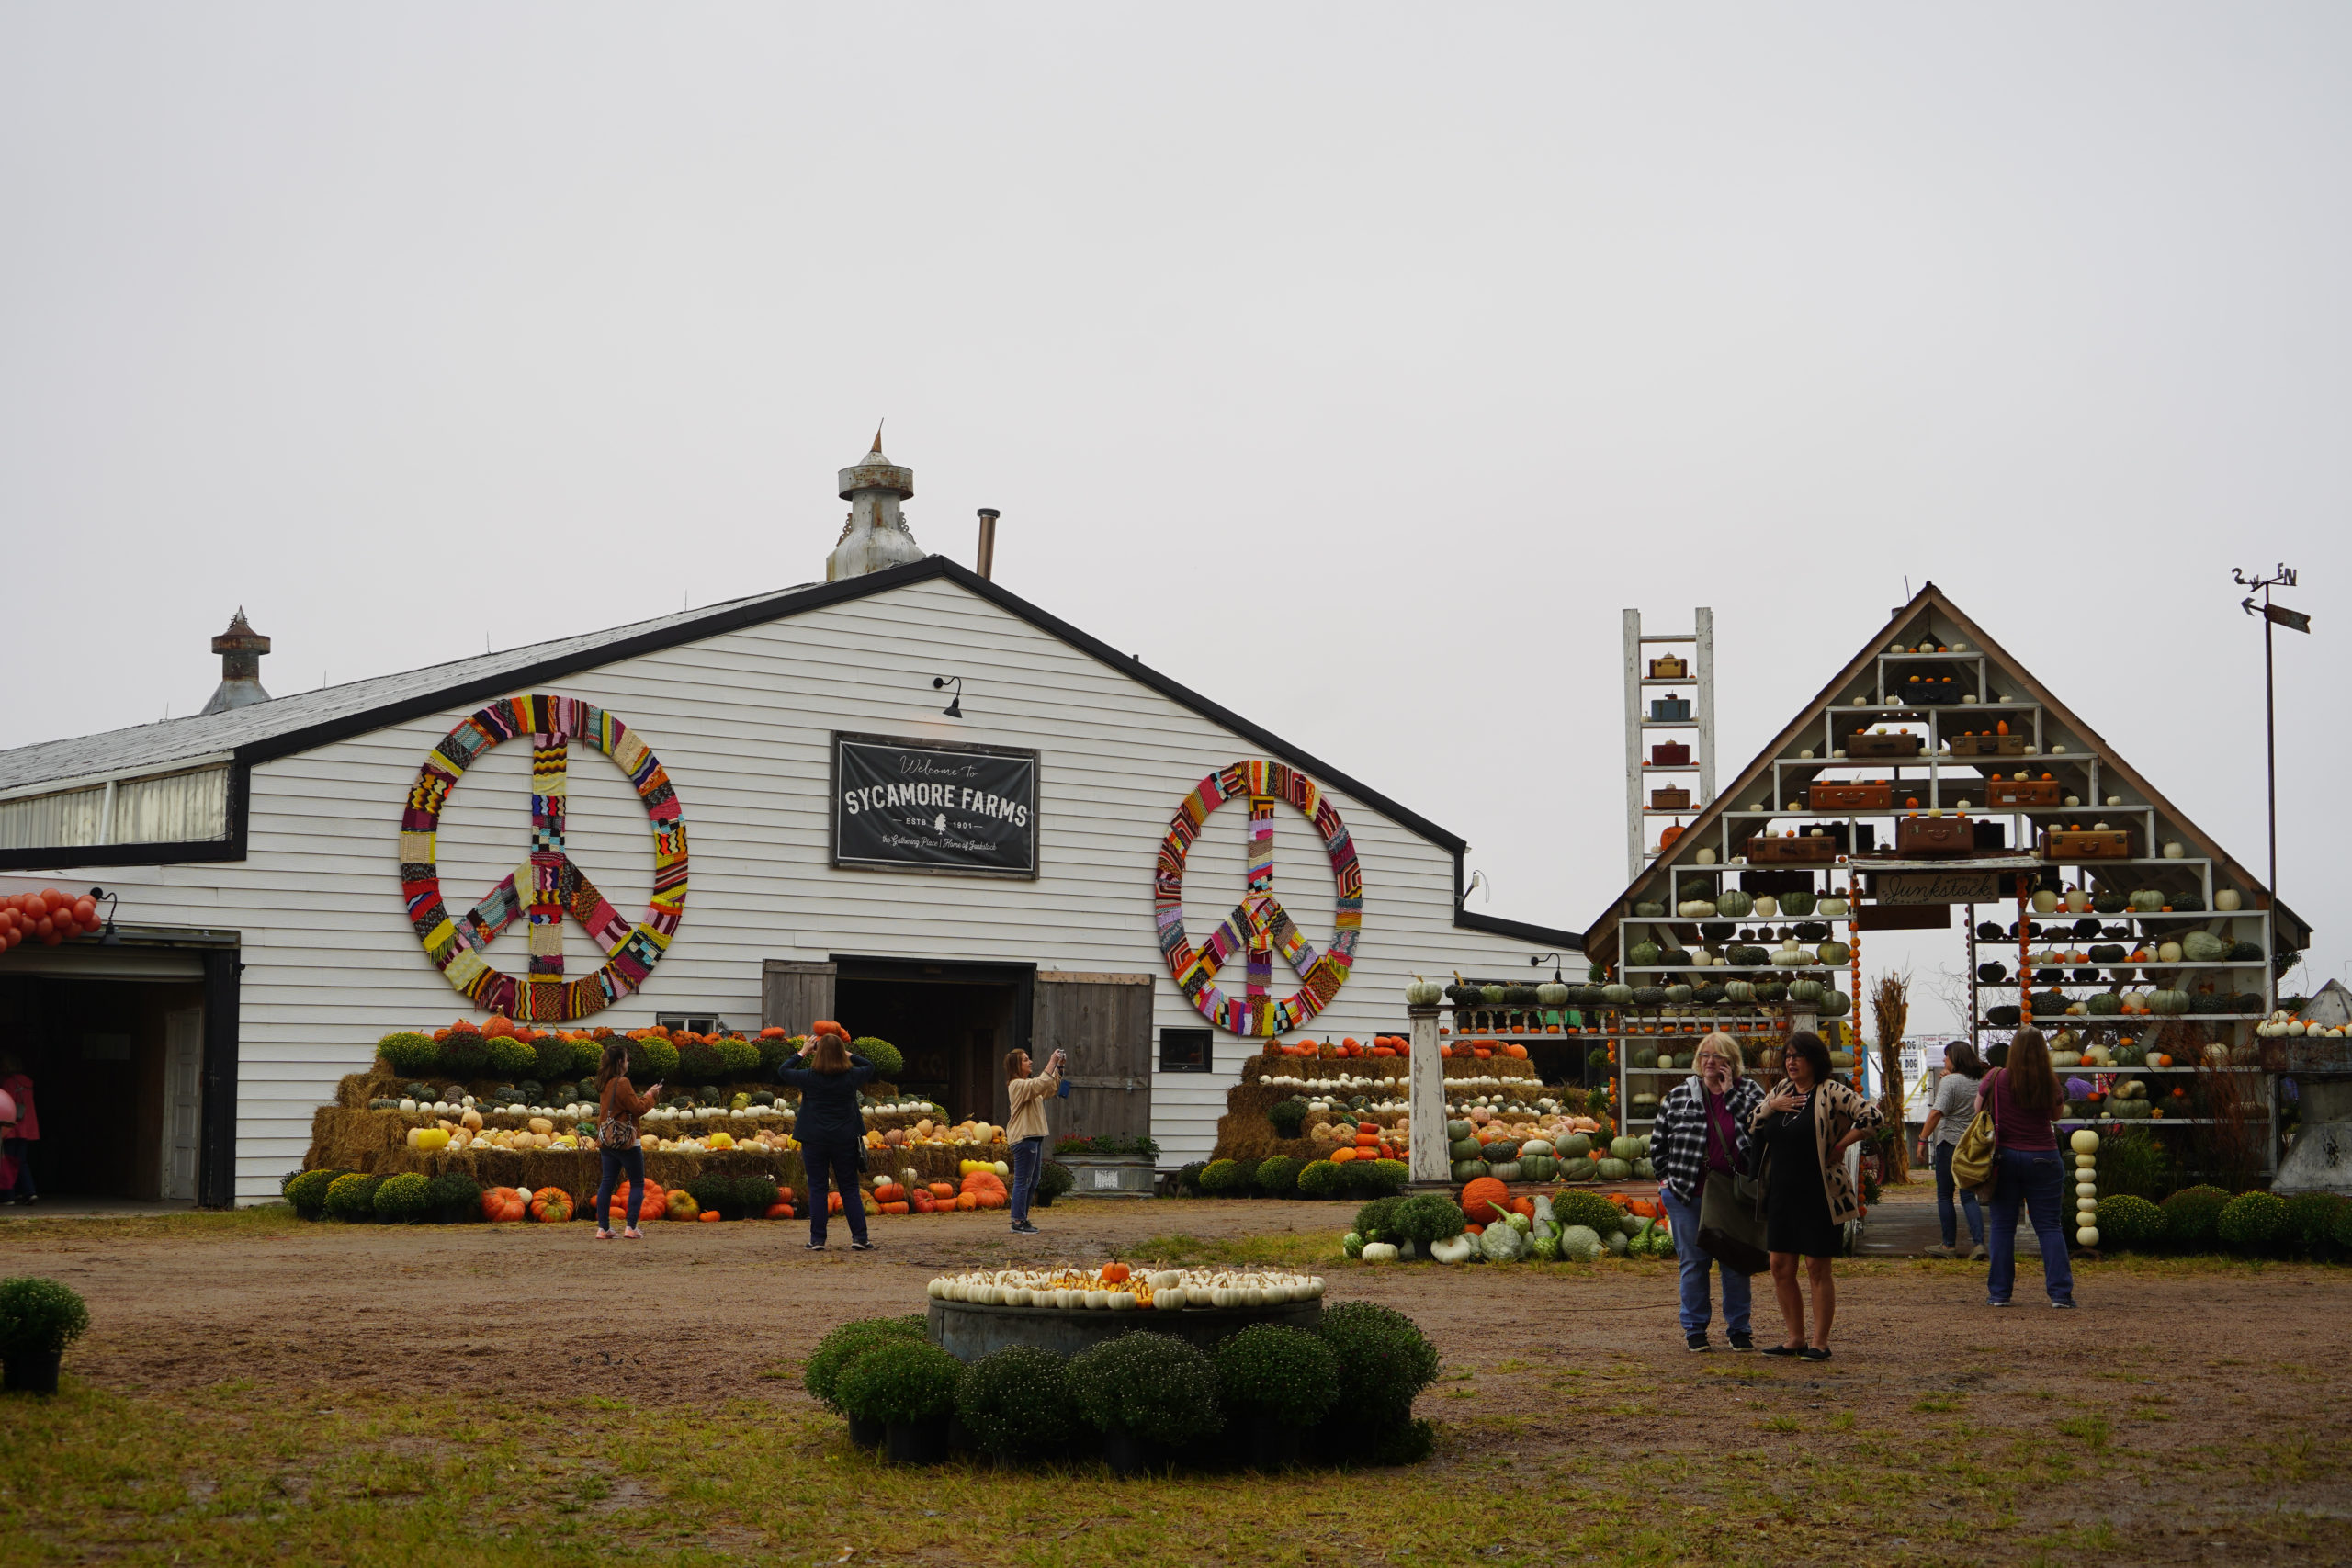 The barn at Sycamore Farms is decorated with pumpkins, a hut, and flowers.